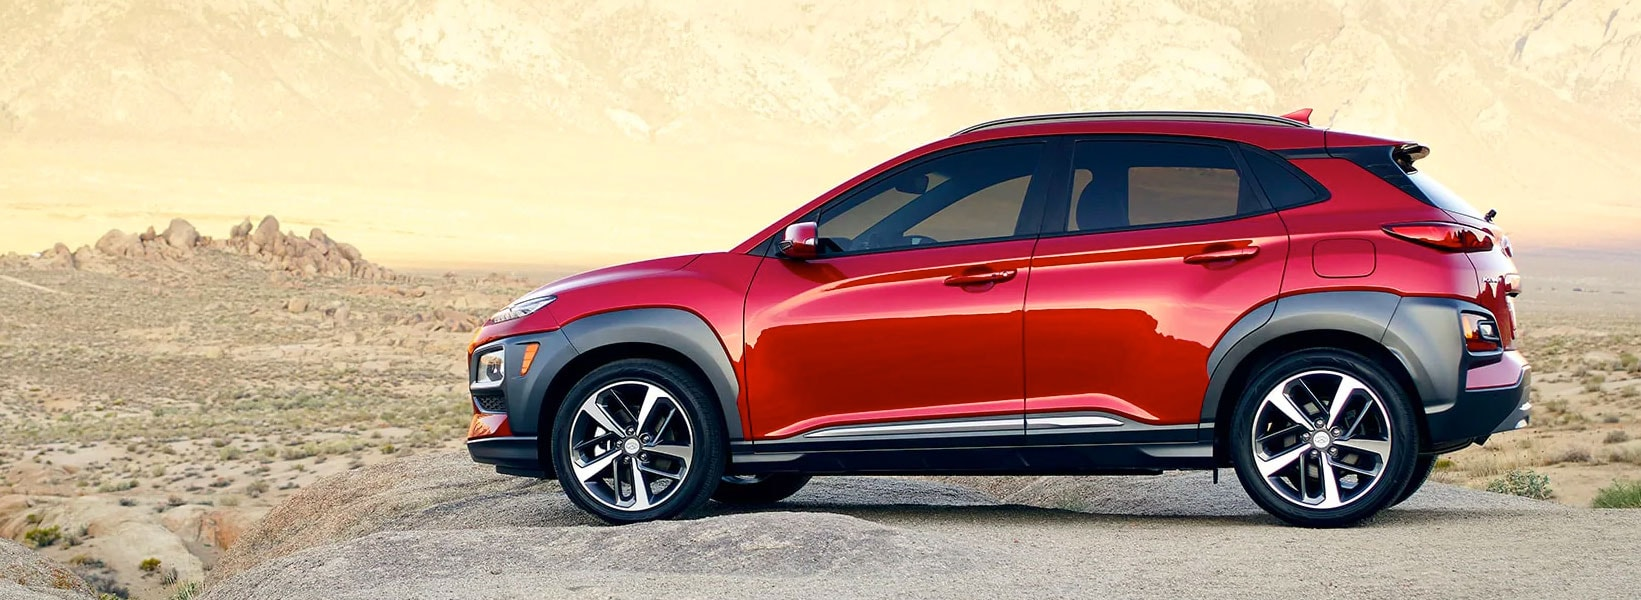 2019 Hyundai Kona Price Chicago IL